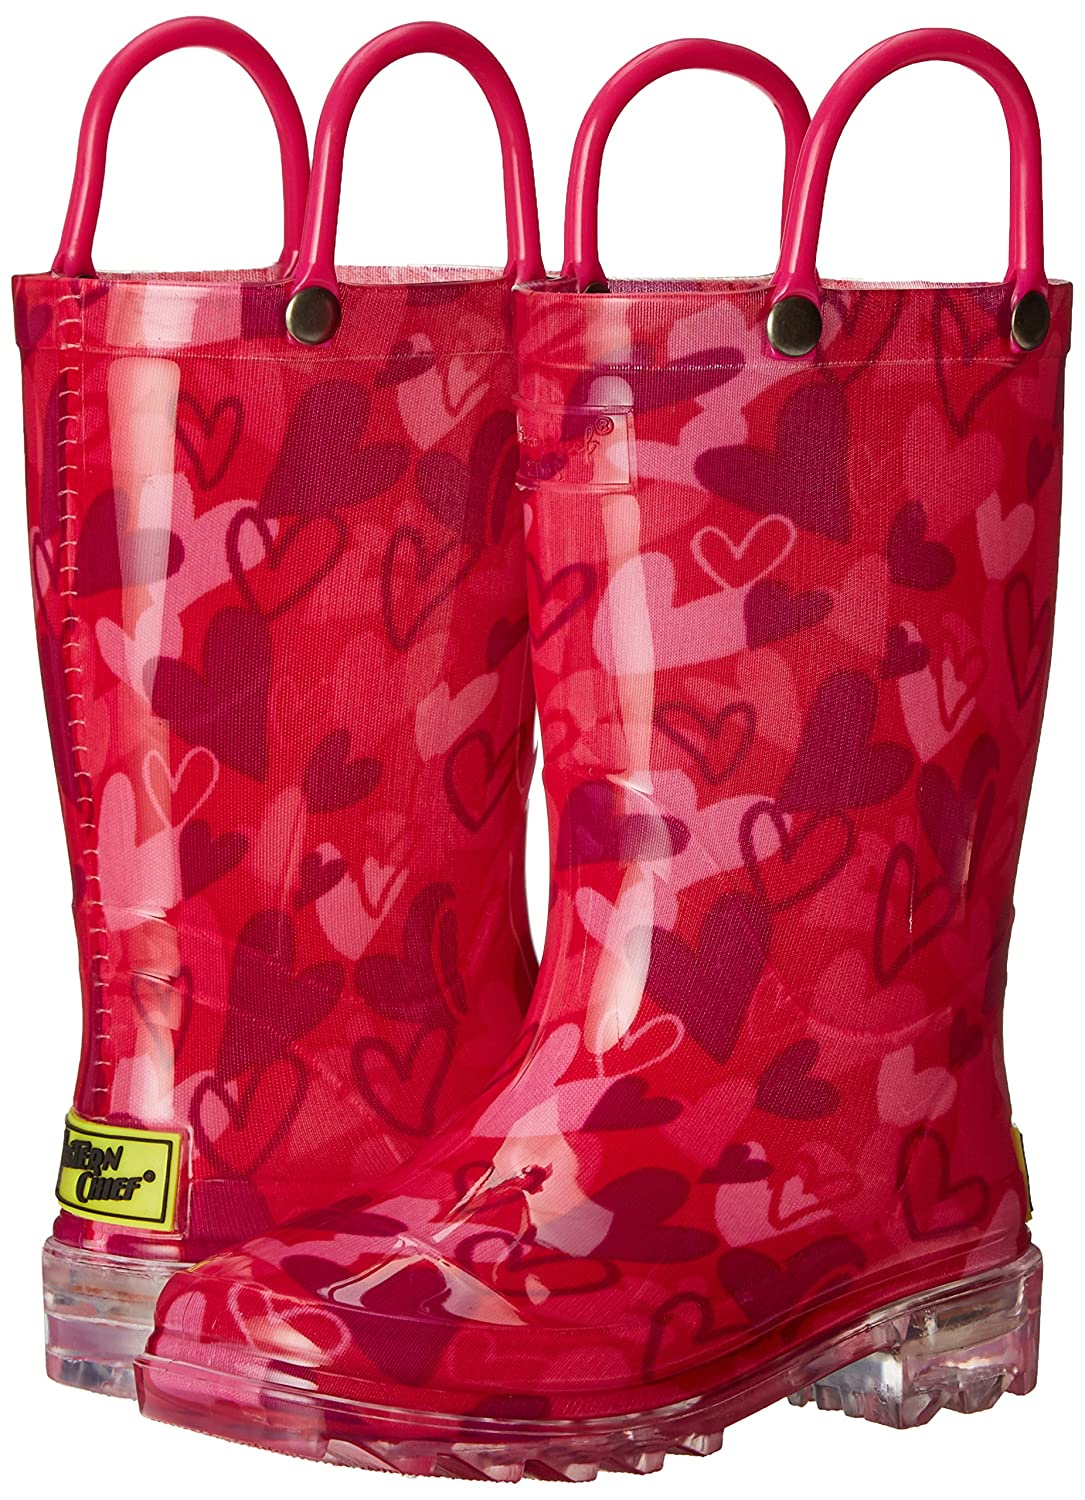 Western Chief Girls Waterproof Rain Boots That Light up with Each Step